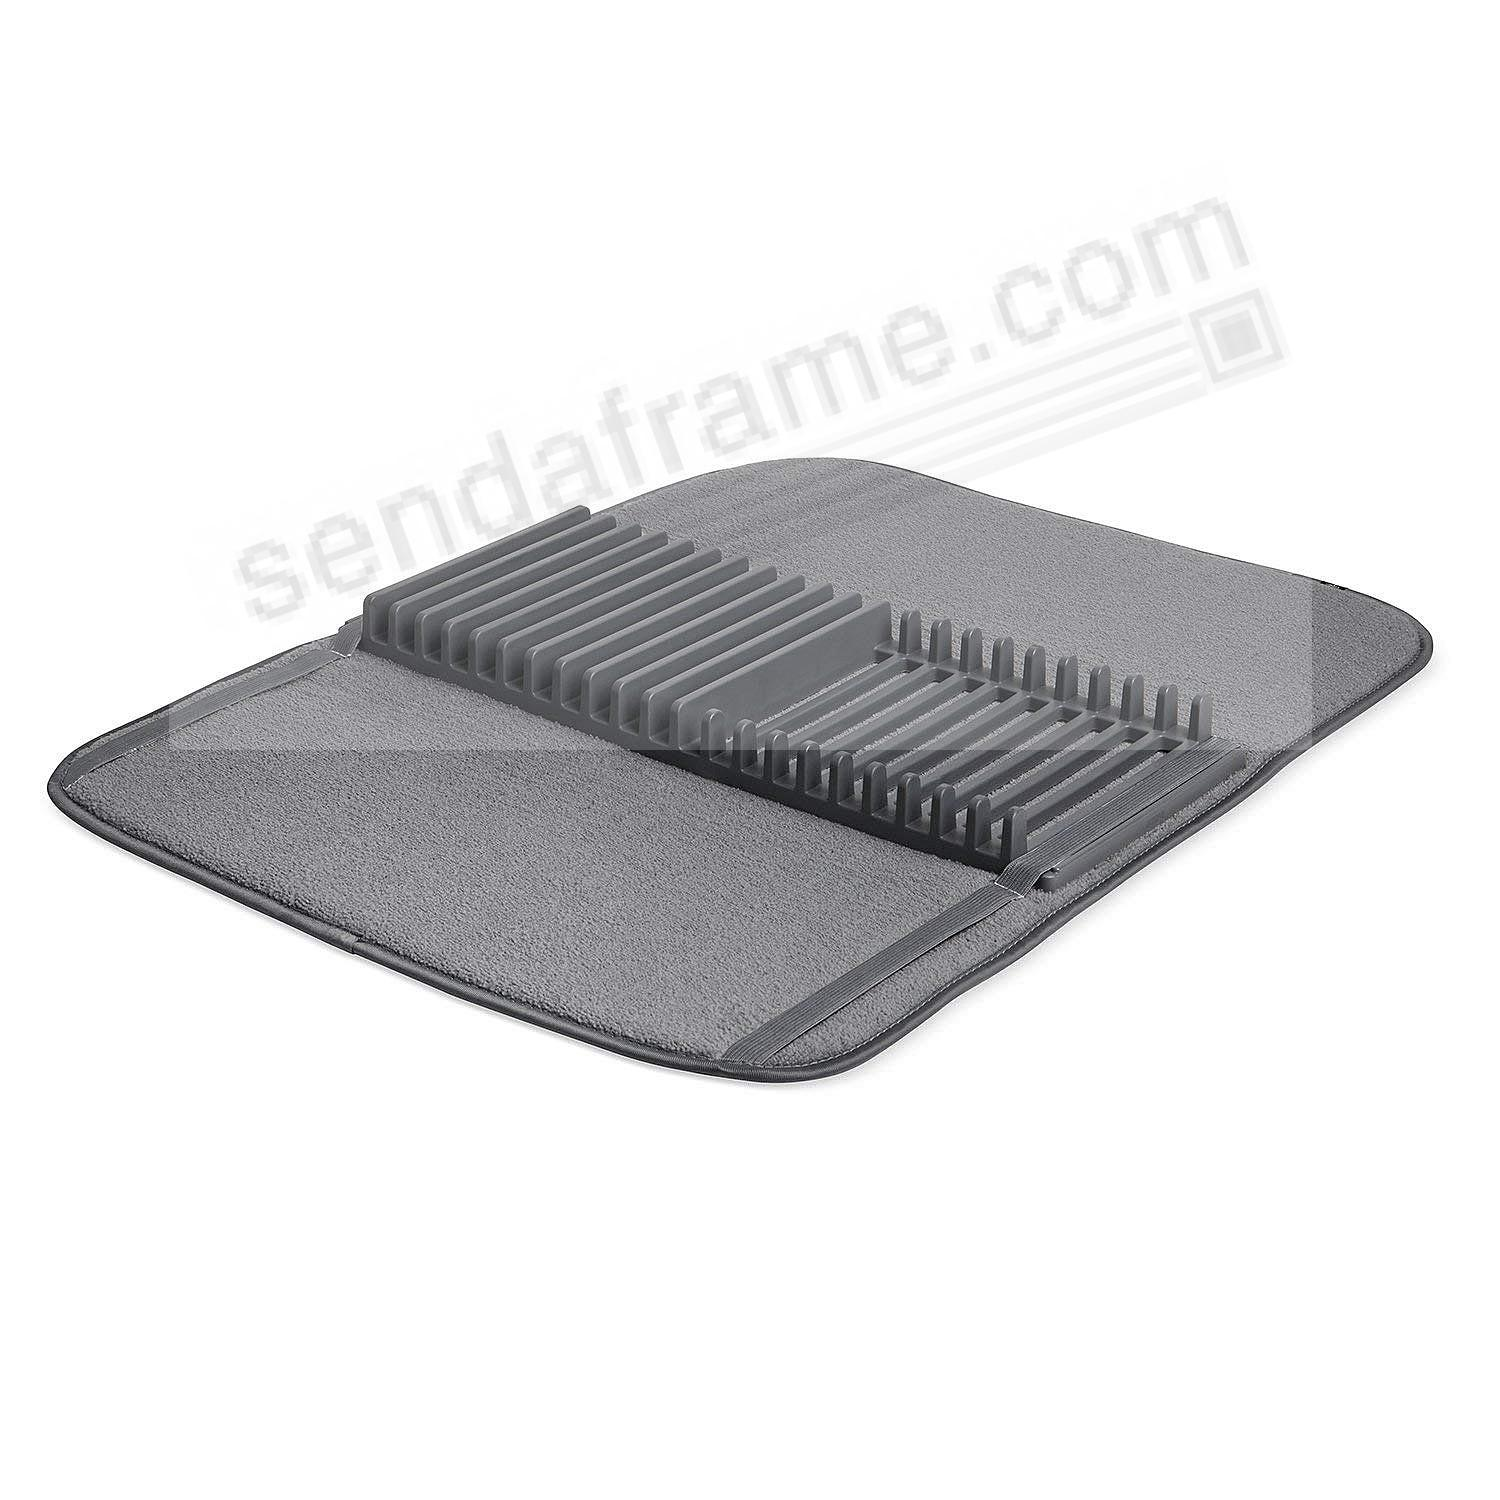 UDRY Drying Rack and Microfiber Dish Mat 24x18 - CHARCOAL by Umbra®